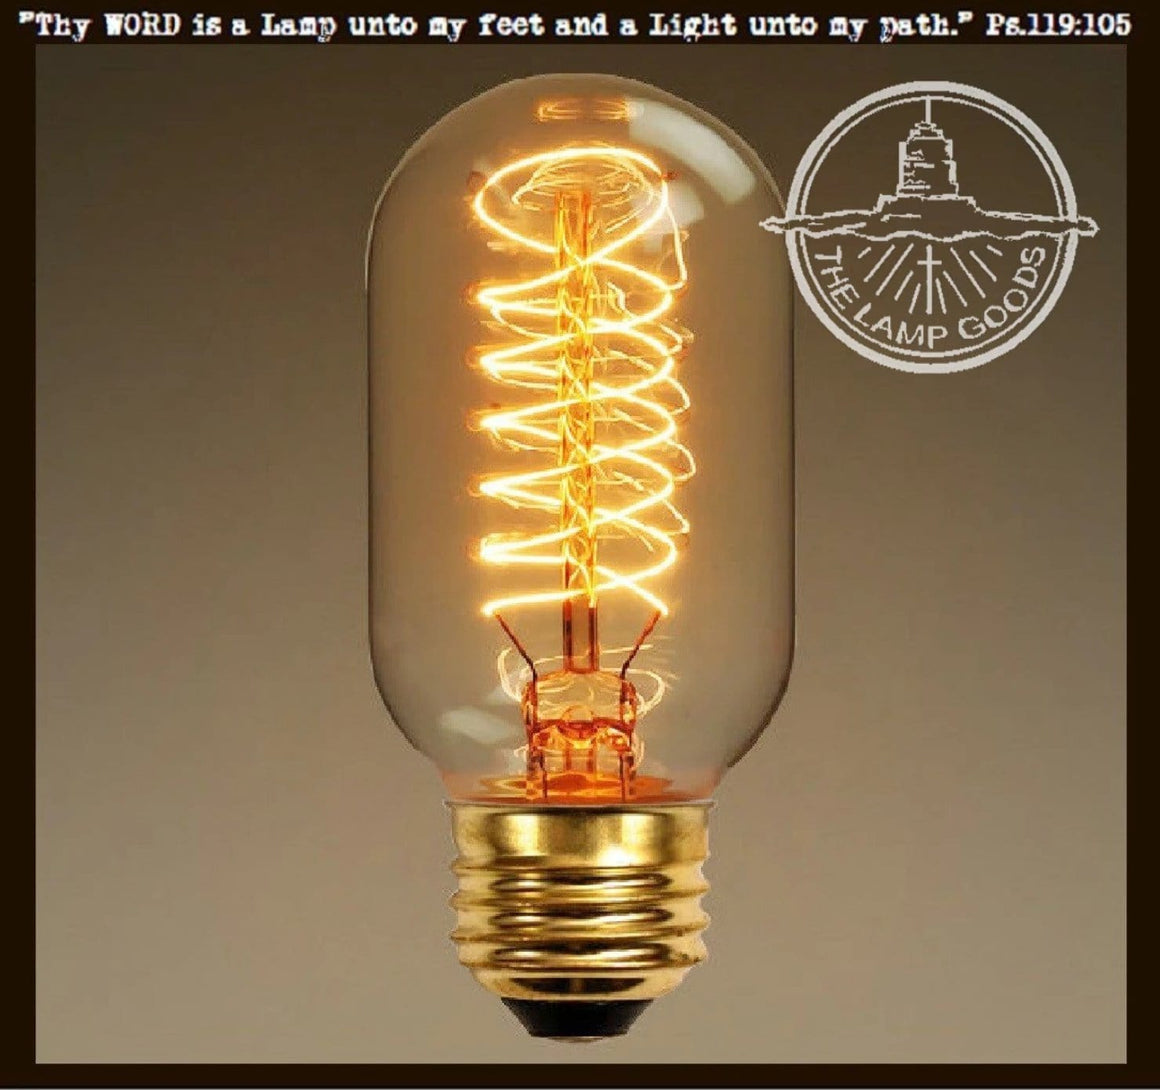 Edison Style Light Bulb for Mason Jar Lighting - 40 watts - The Lamp Goods